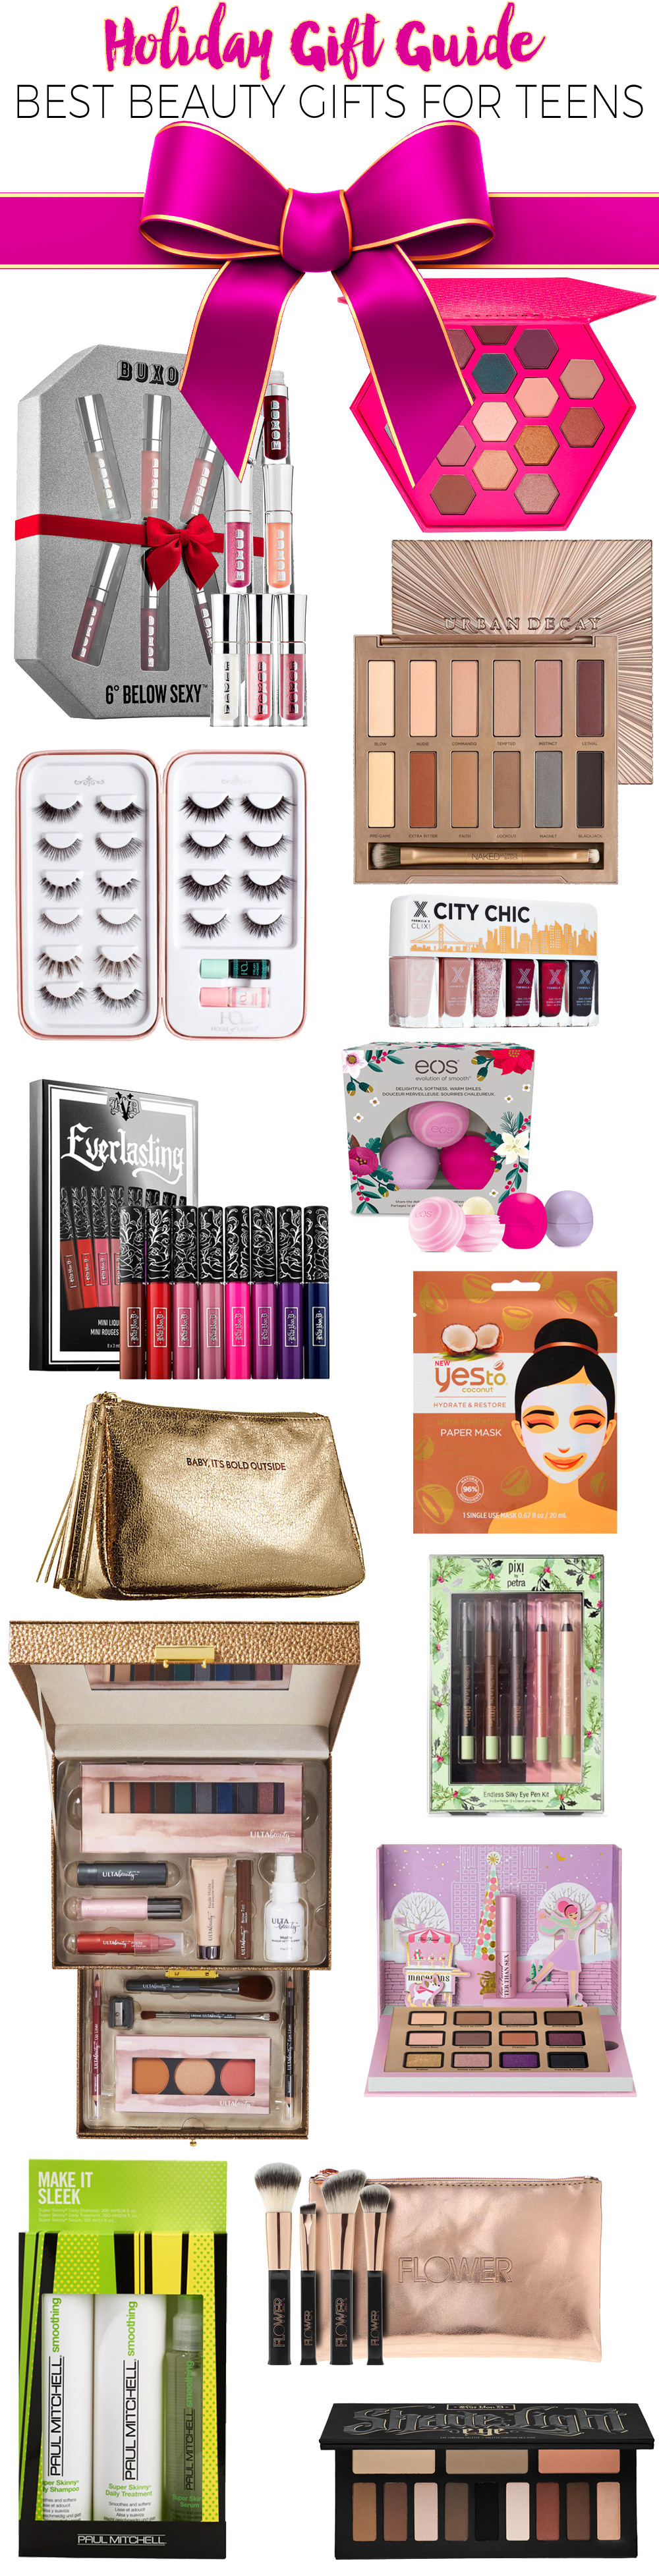 Holiday Gift Guide 2016: Best Beauty Gifts for Teens